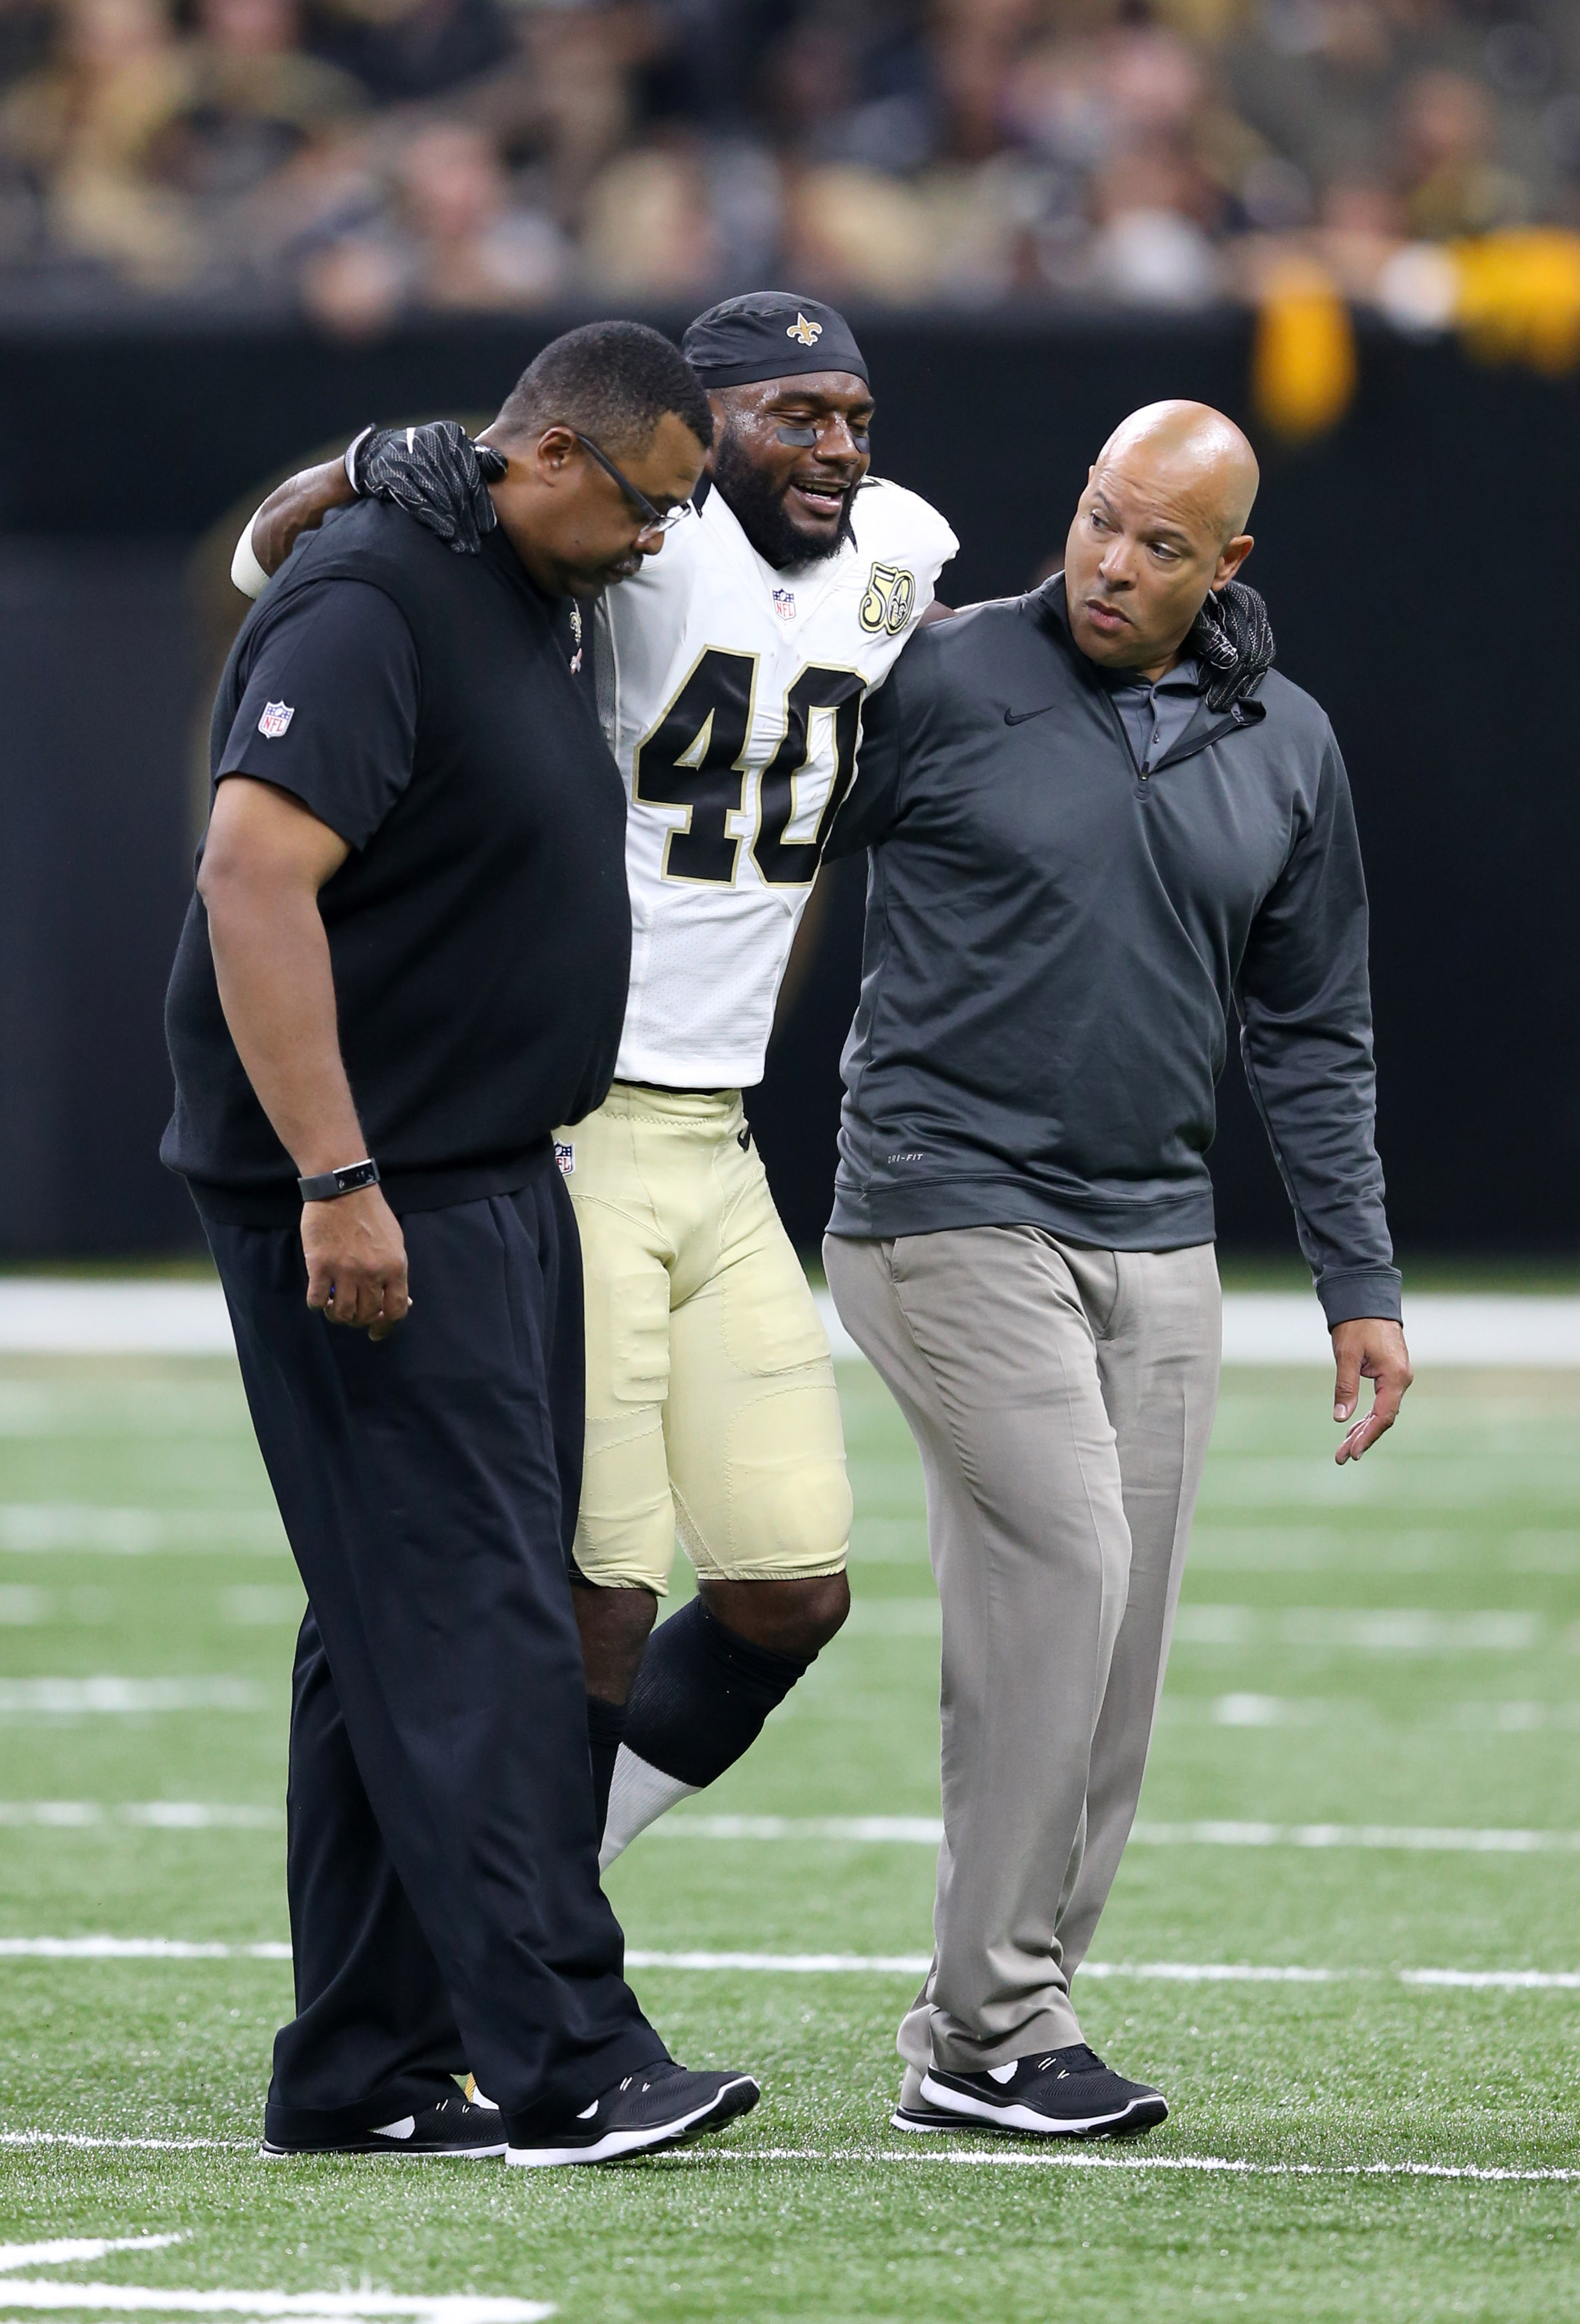 Saints Delvin Breaux Done For Year